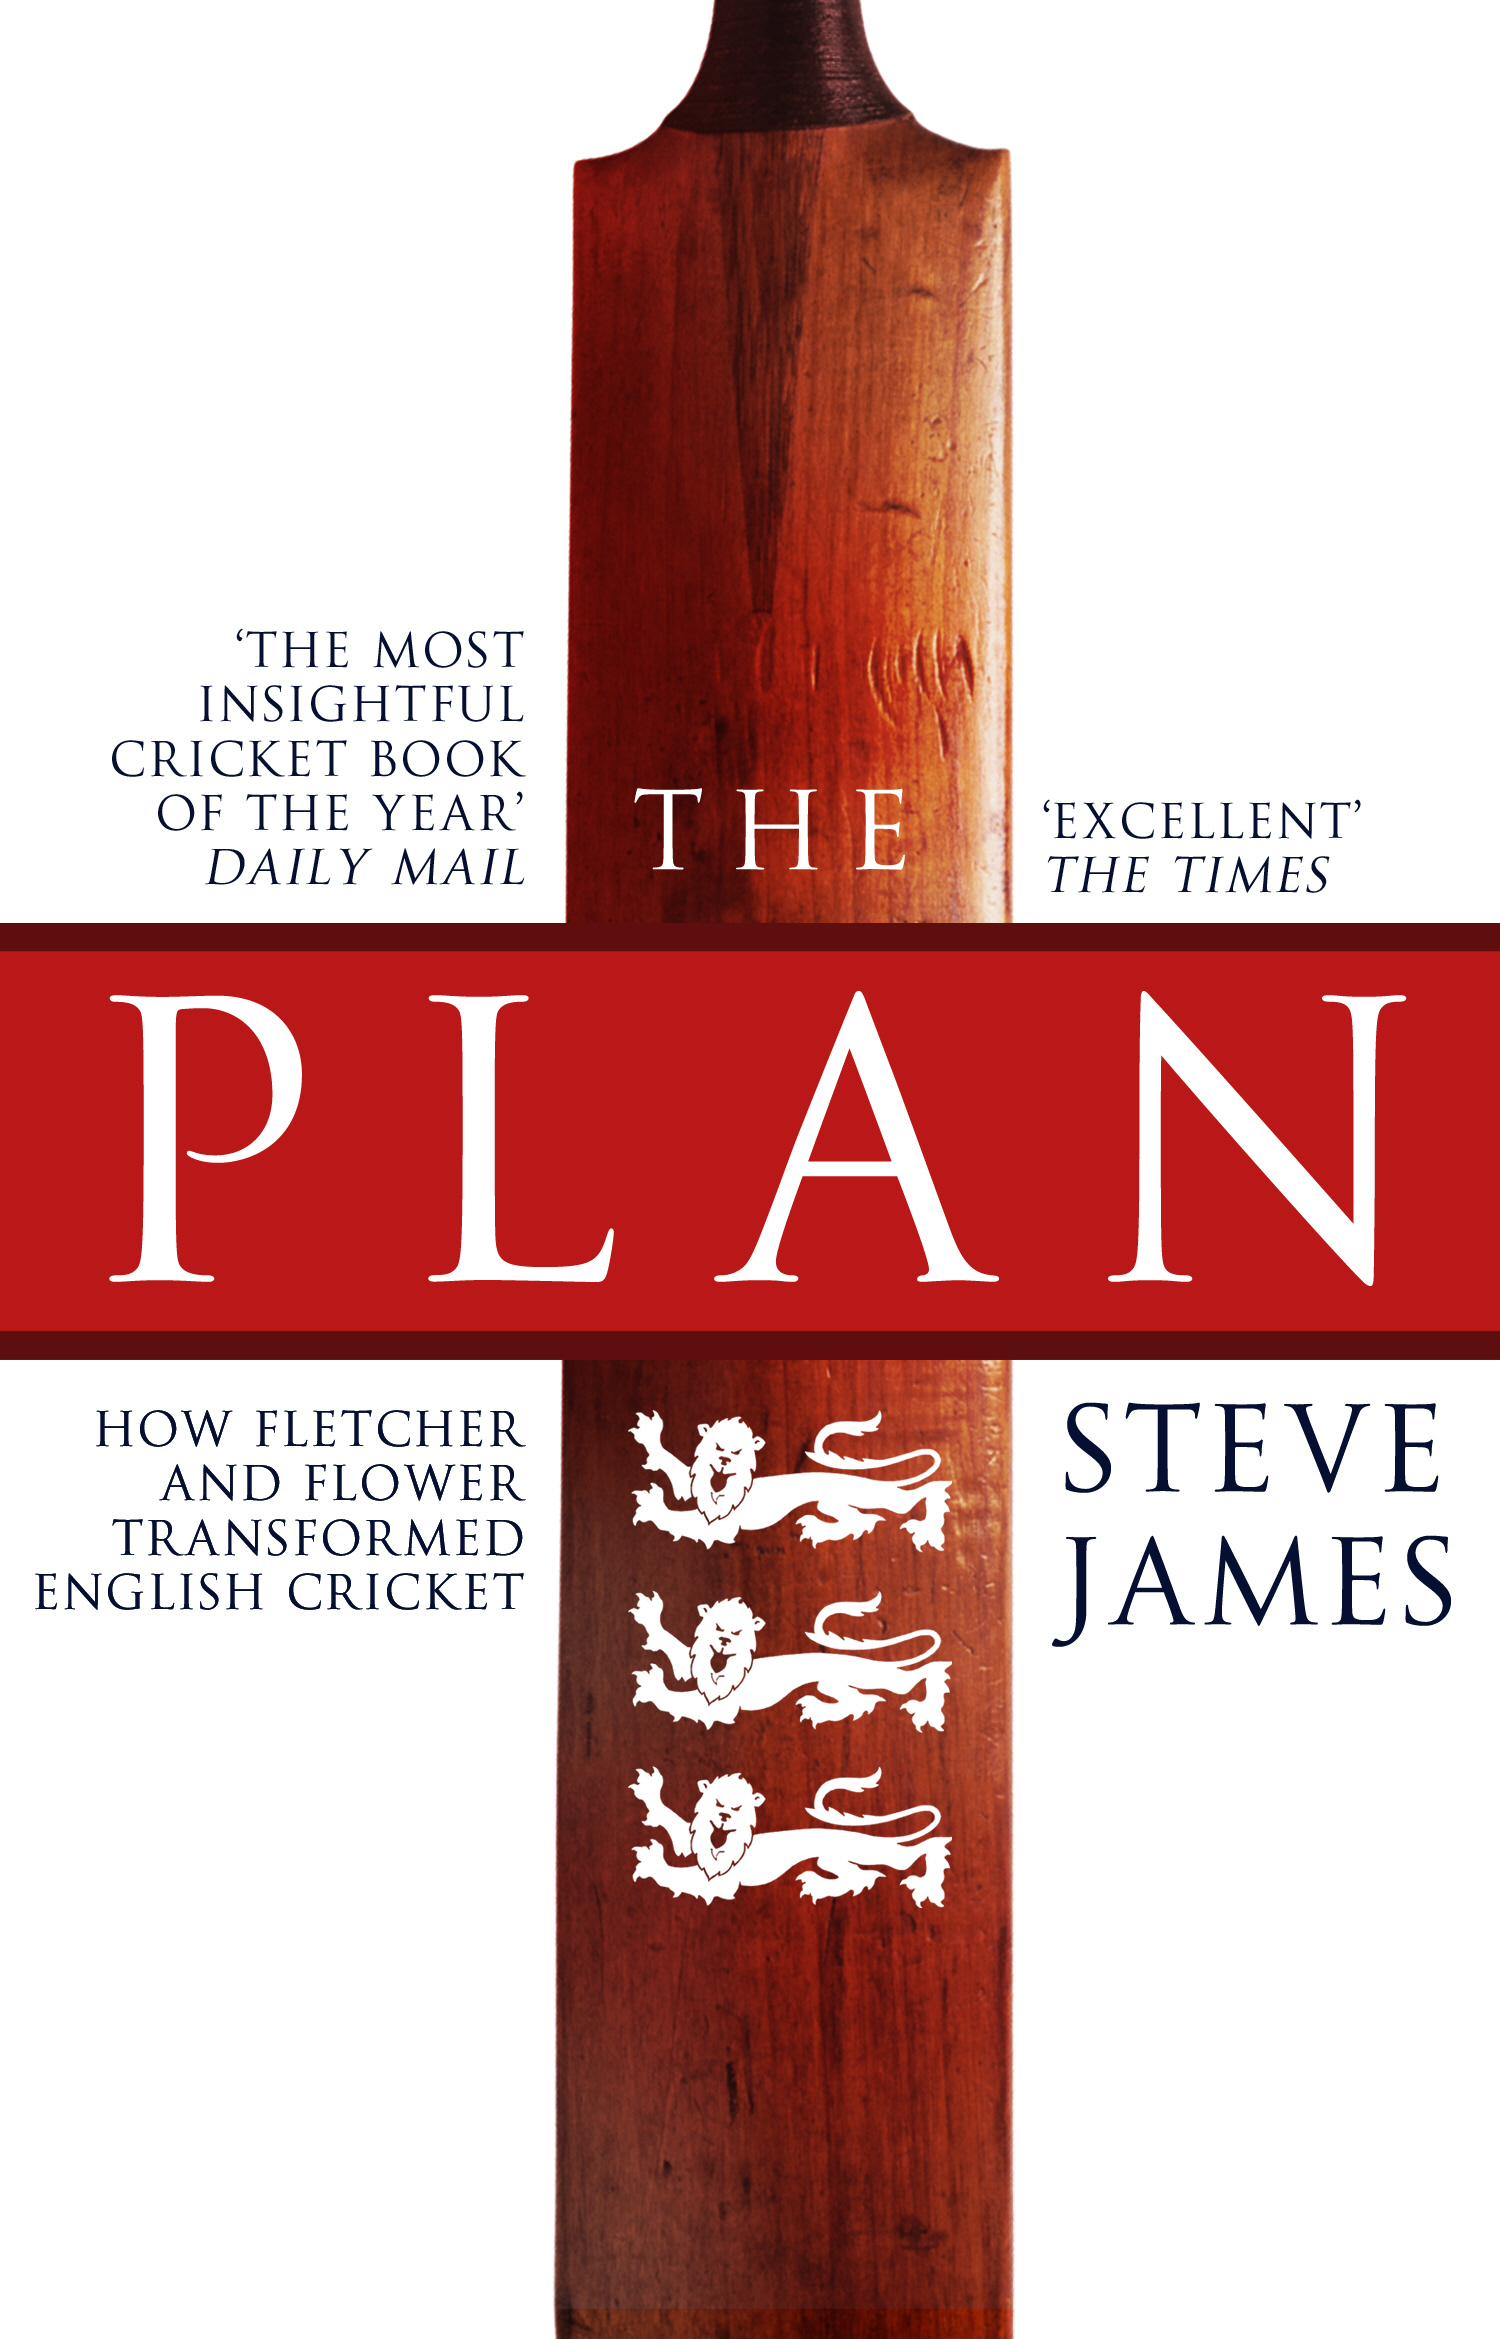 The Plan: How Fletcher and Flower Transformed English Cricket